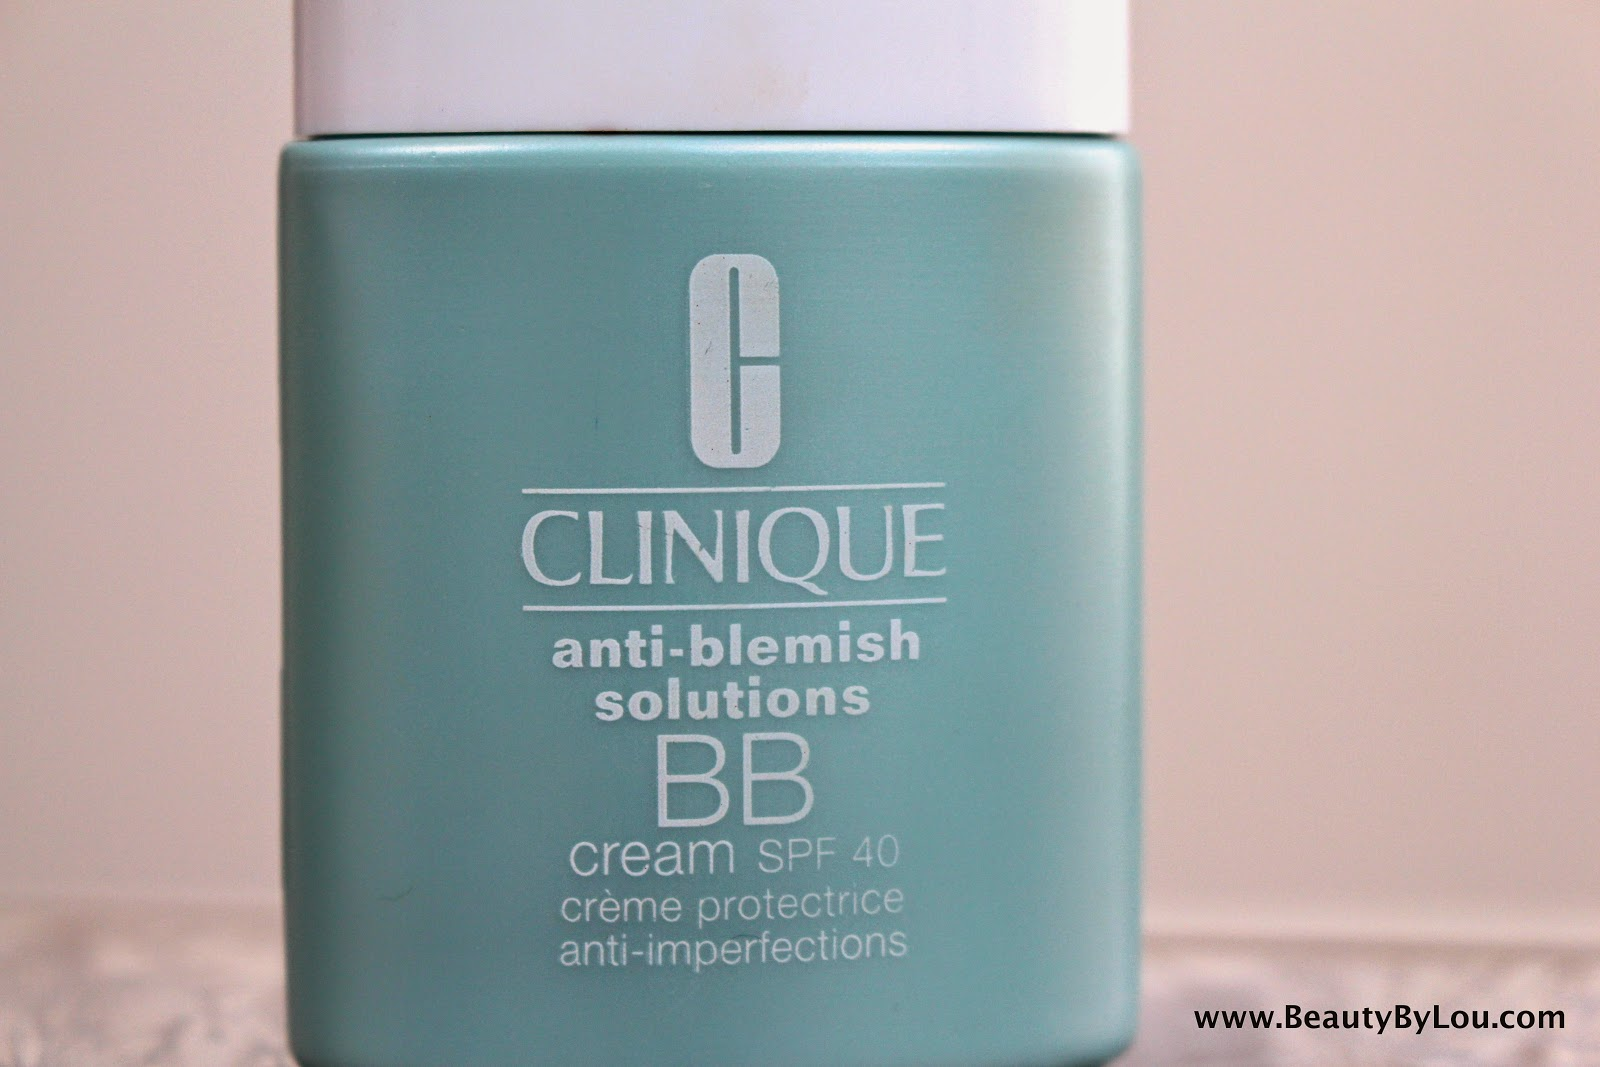 http://www.beautybylou.com/2015/04/revue-application-bb-creme-blemish-solutions-clinique.html